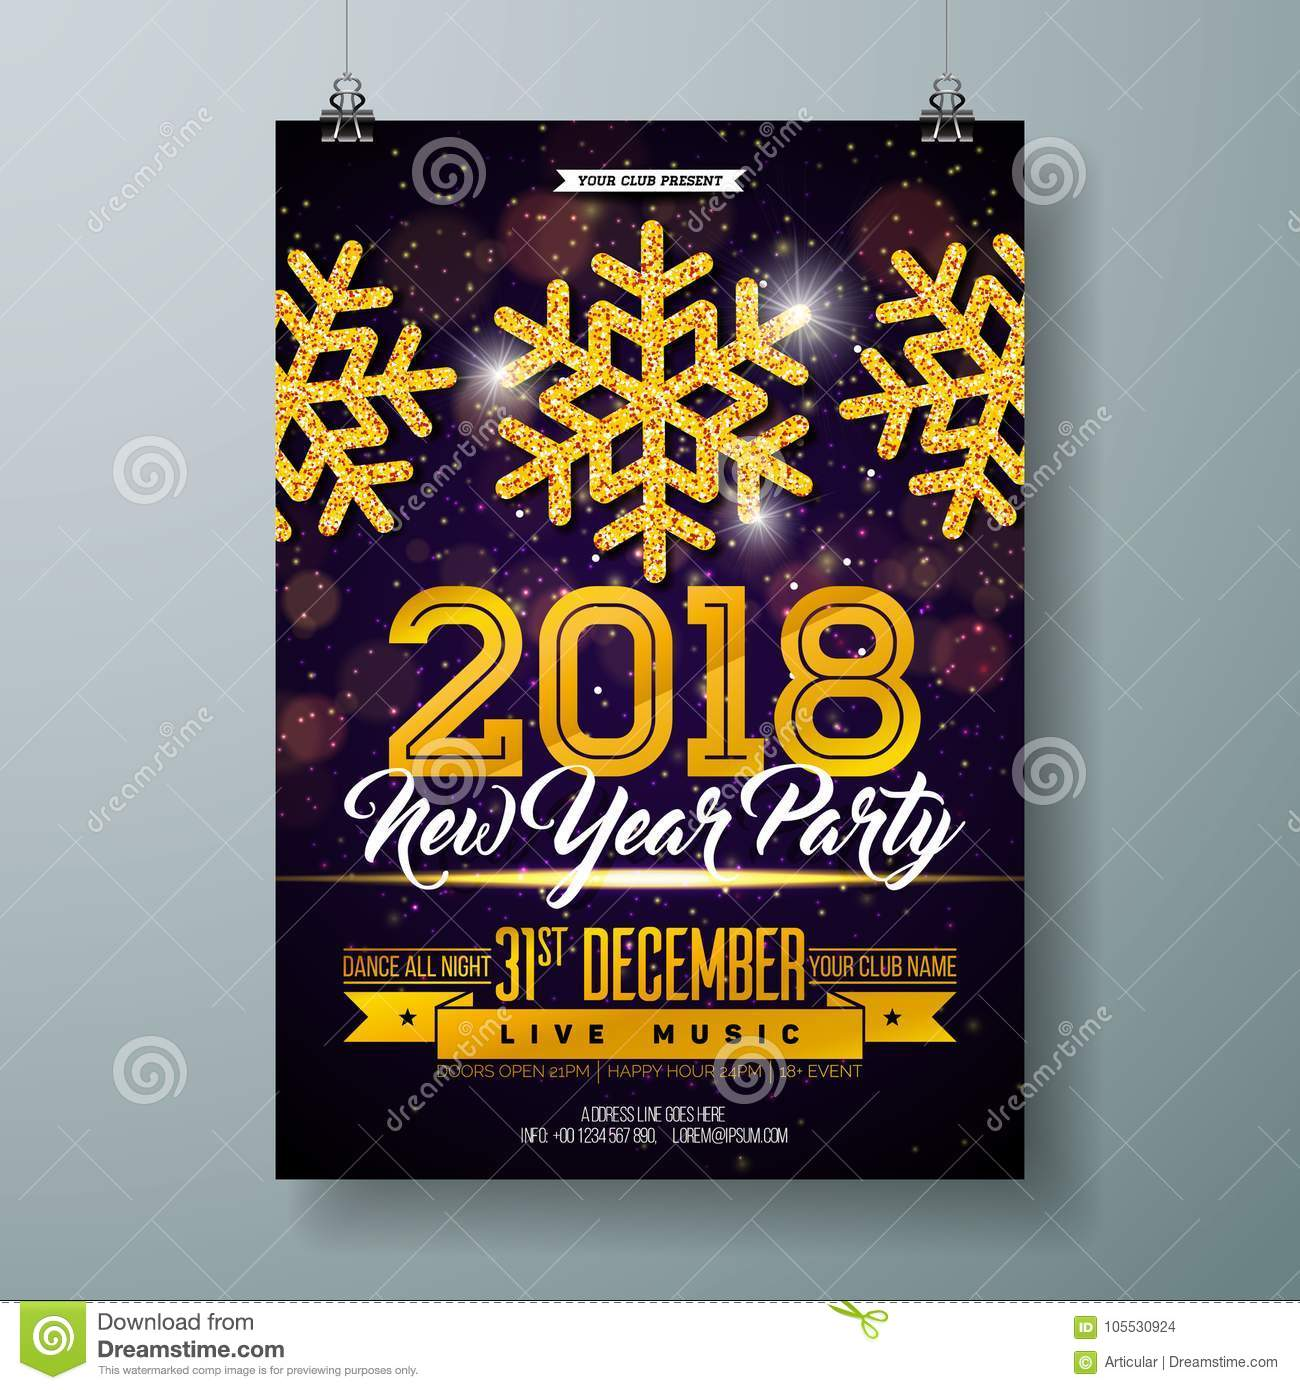 new year party celebration poster template illustration with 3d 2018 number disco ball and firework